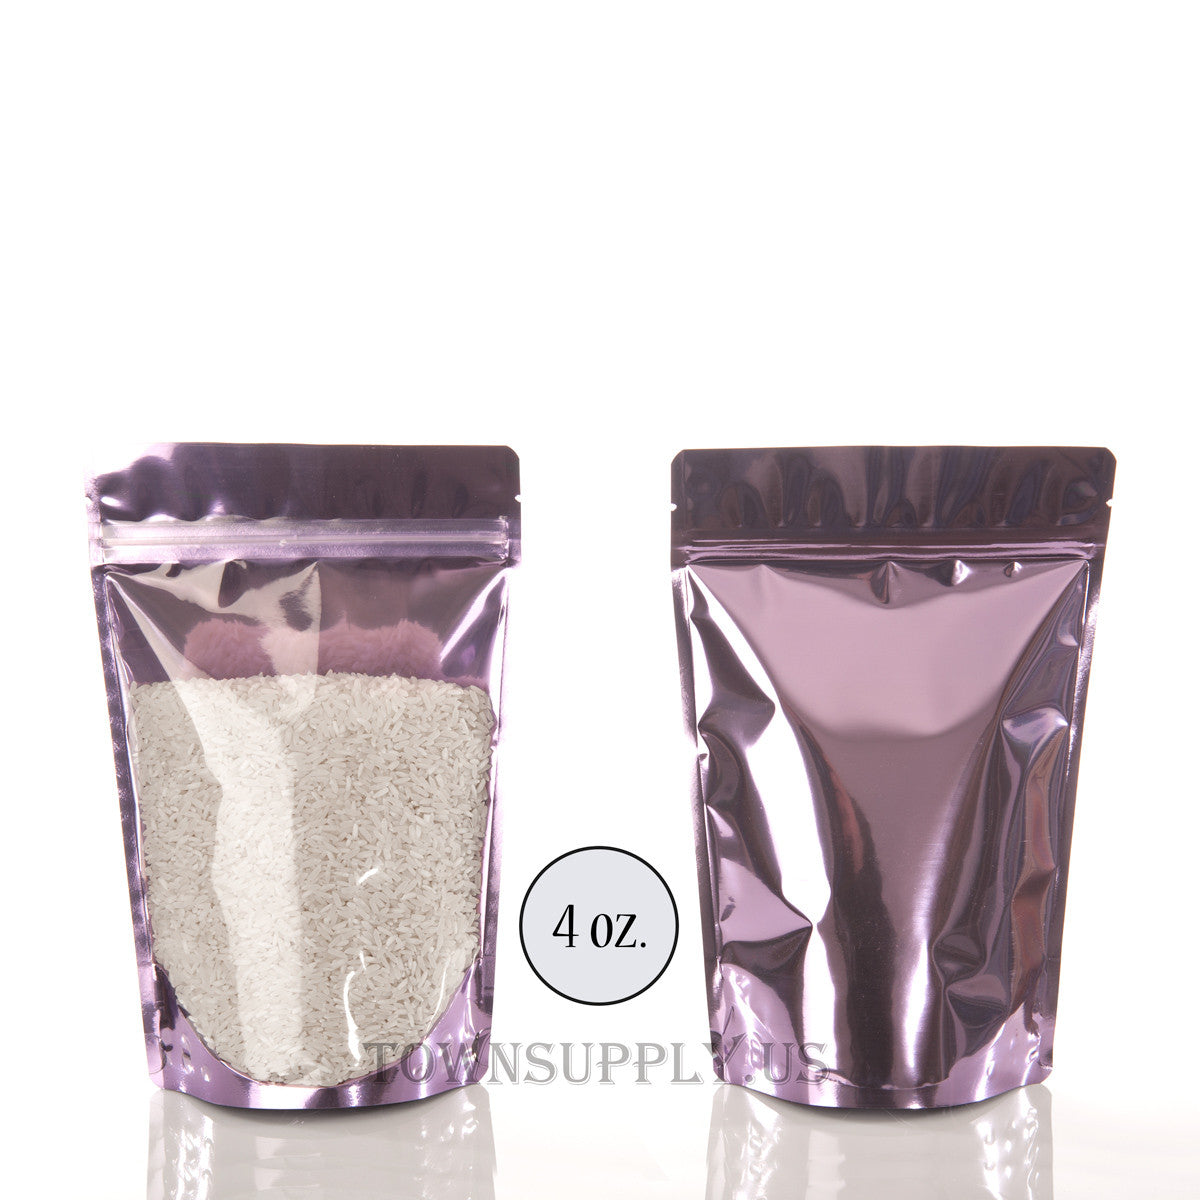 lavender foil stand up pouch with clear poly front, 4 oz. bags - Town Supply